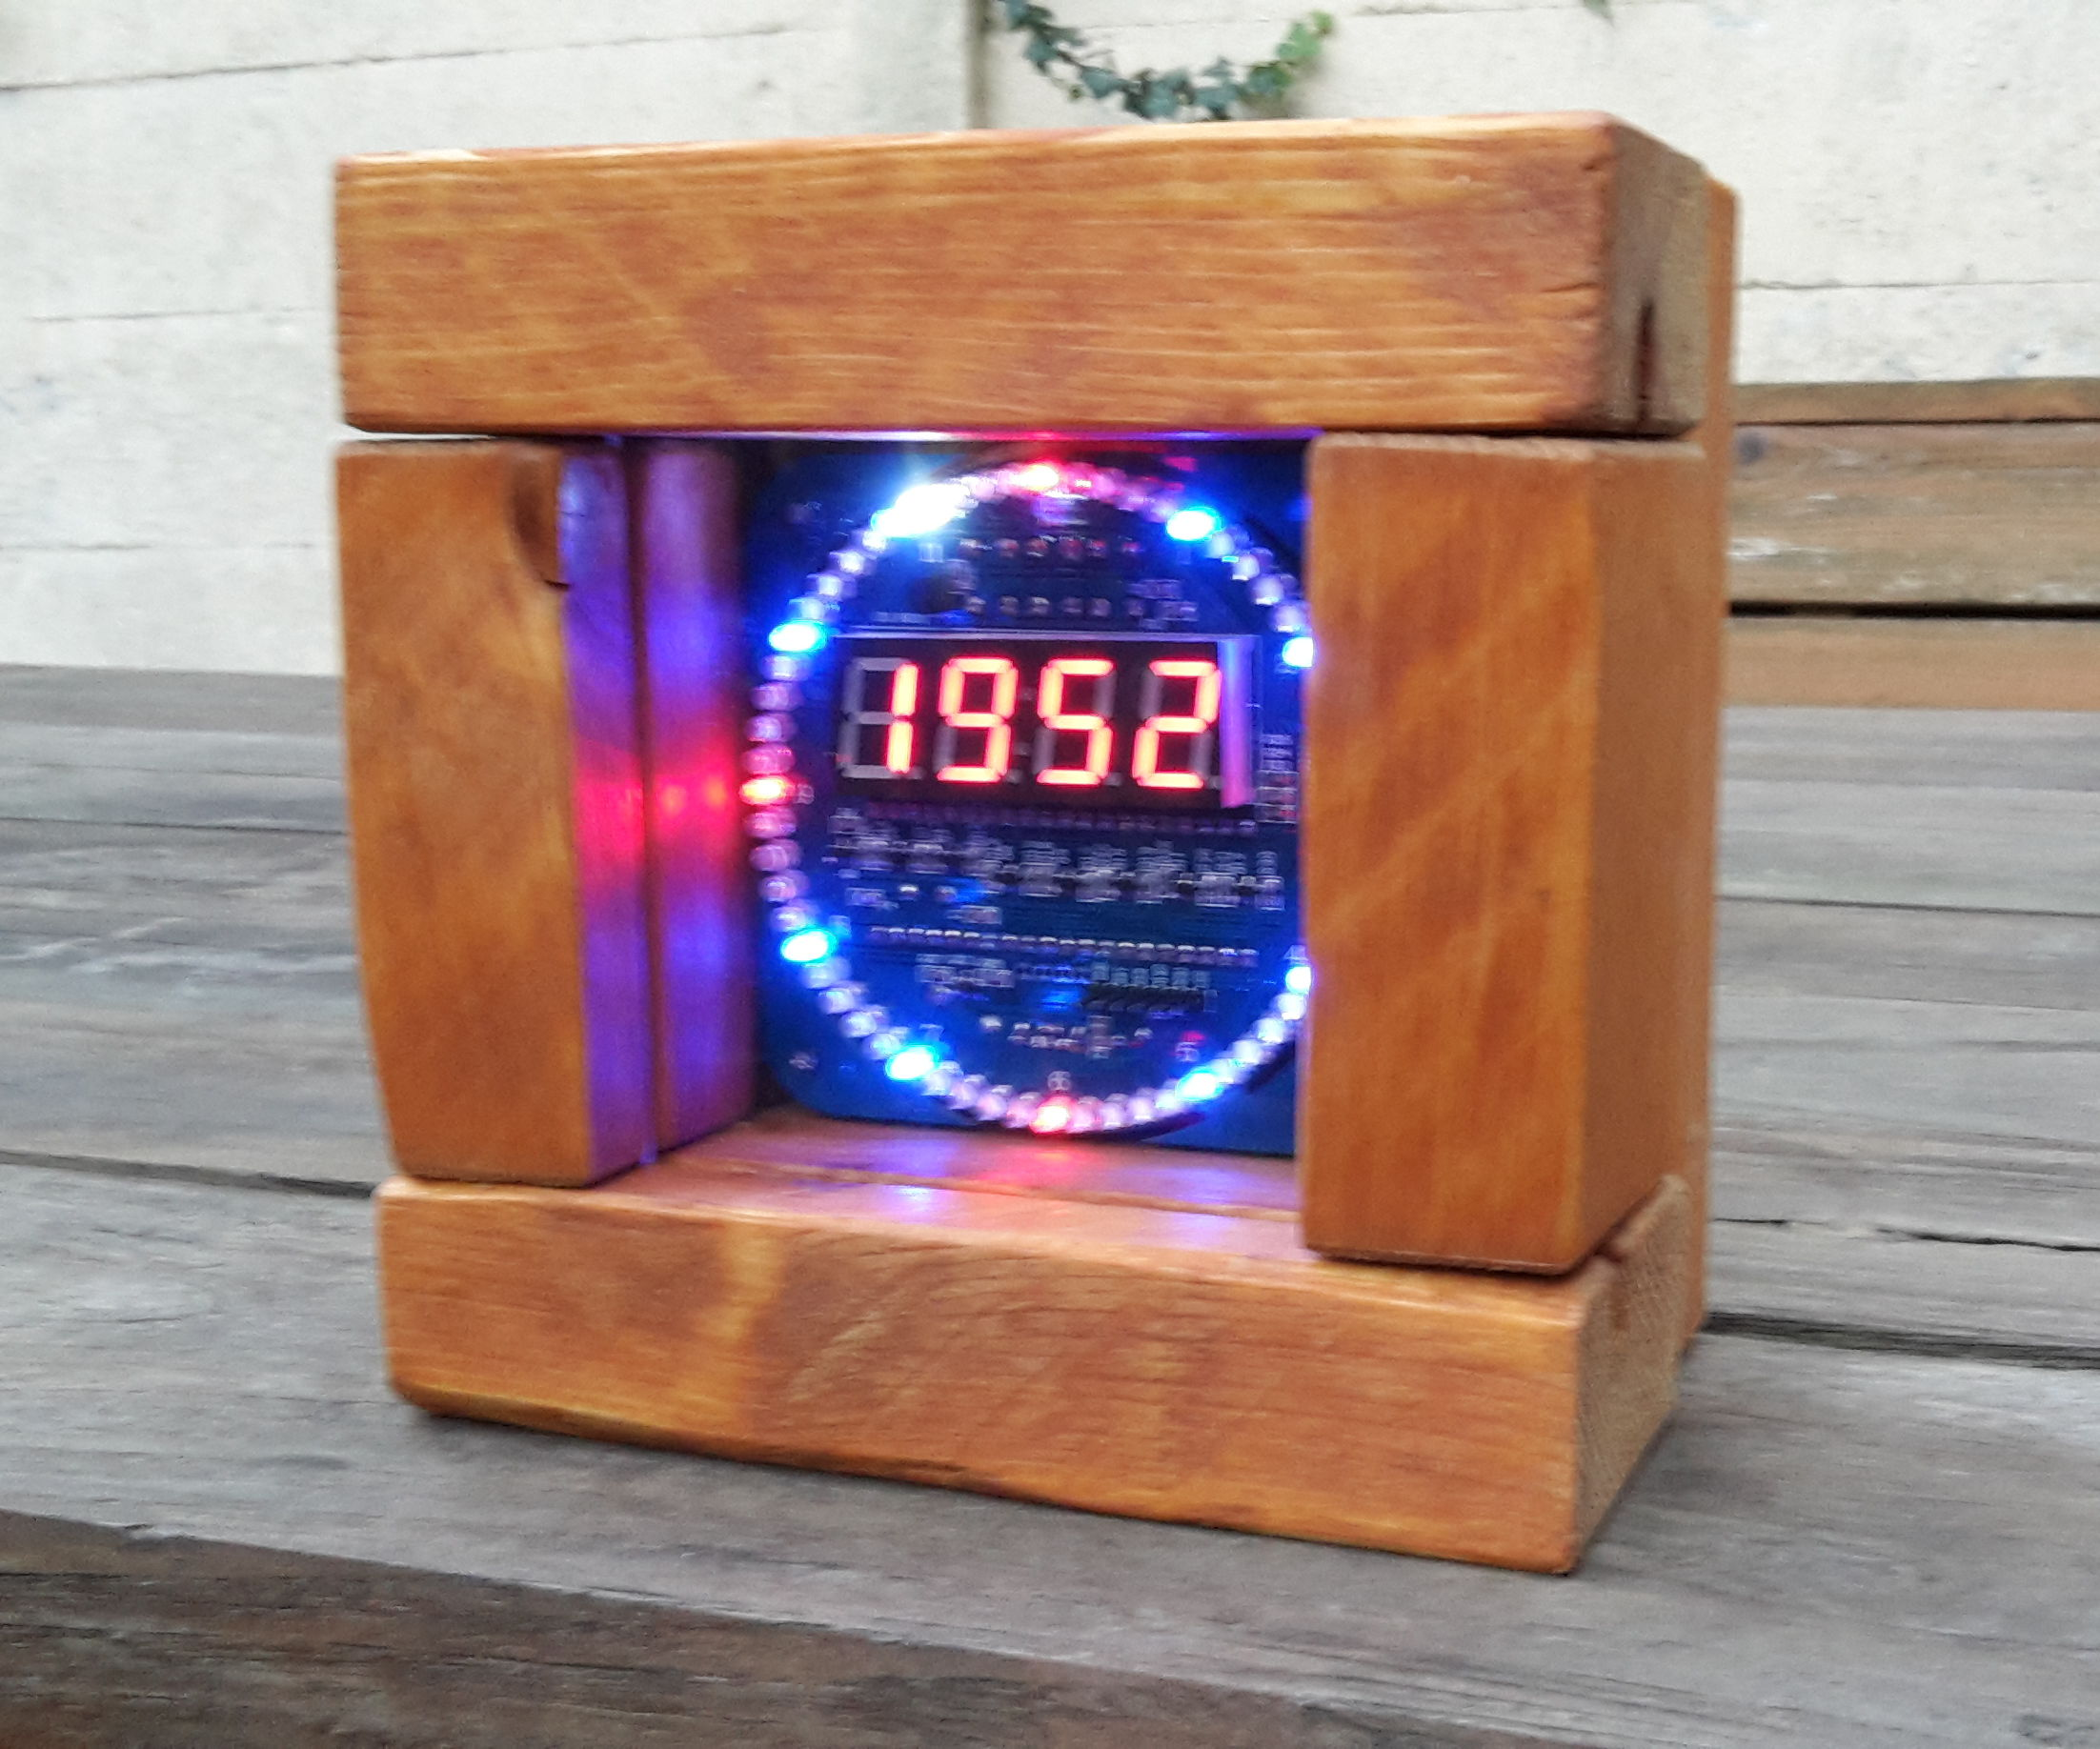 Custom wooden case for DIY Ebay DS1302 rotating clock